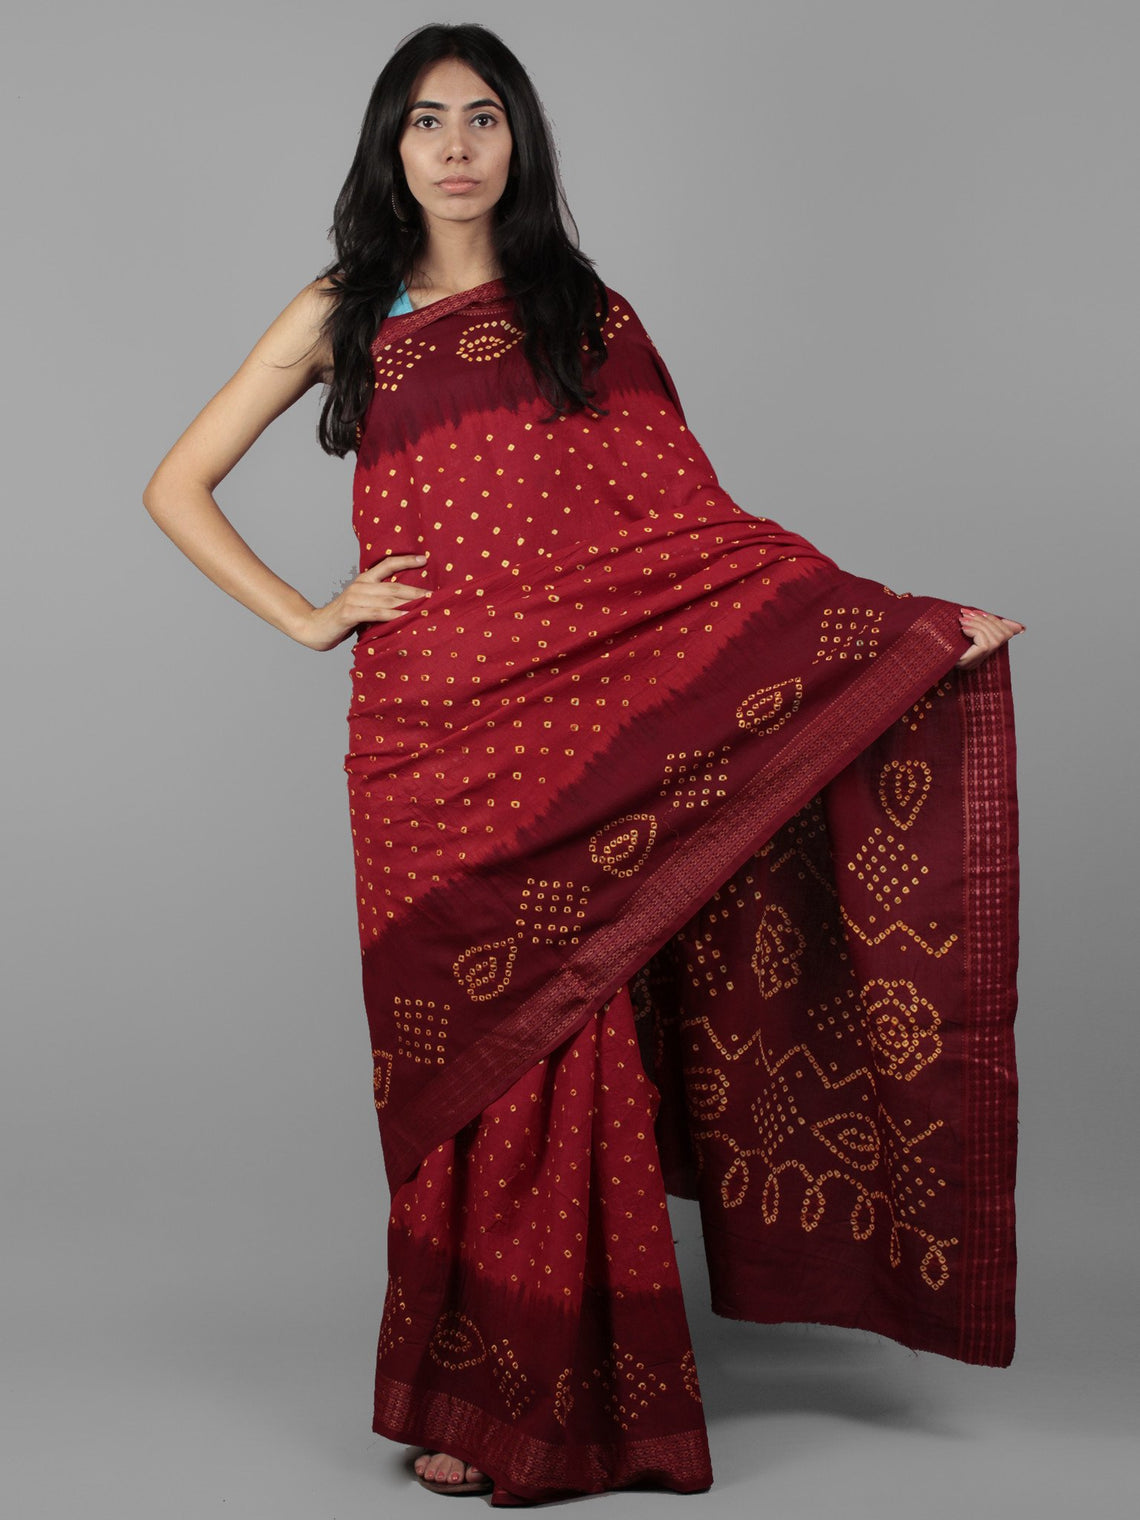 Red Maroon Yellow Hand Tie & Dye Bandhej Glace Cotton Saree With Resham Border - S031701976